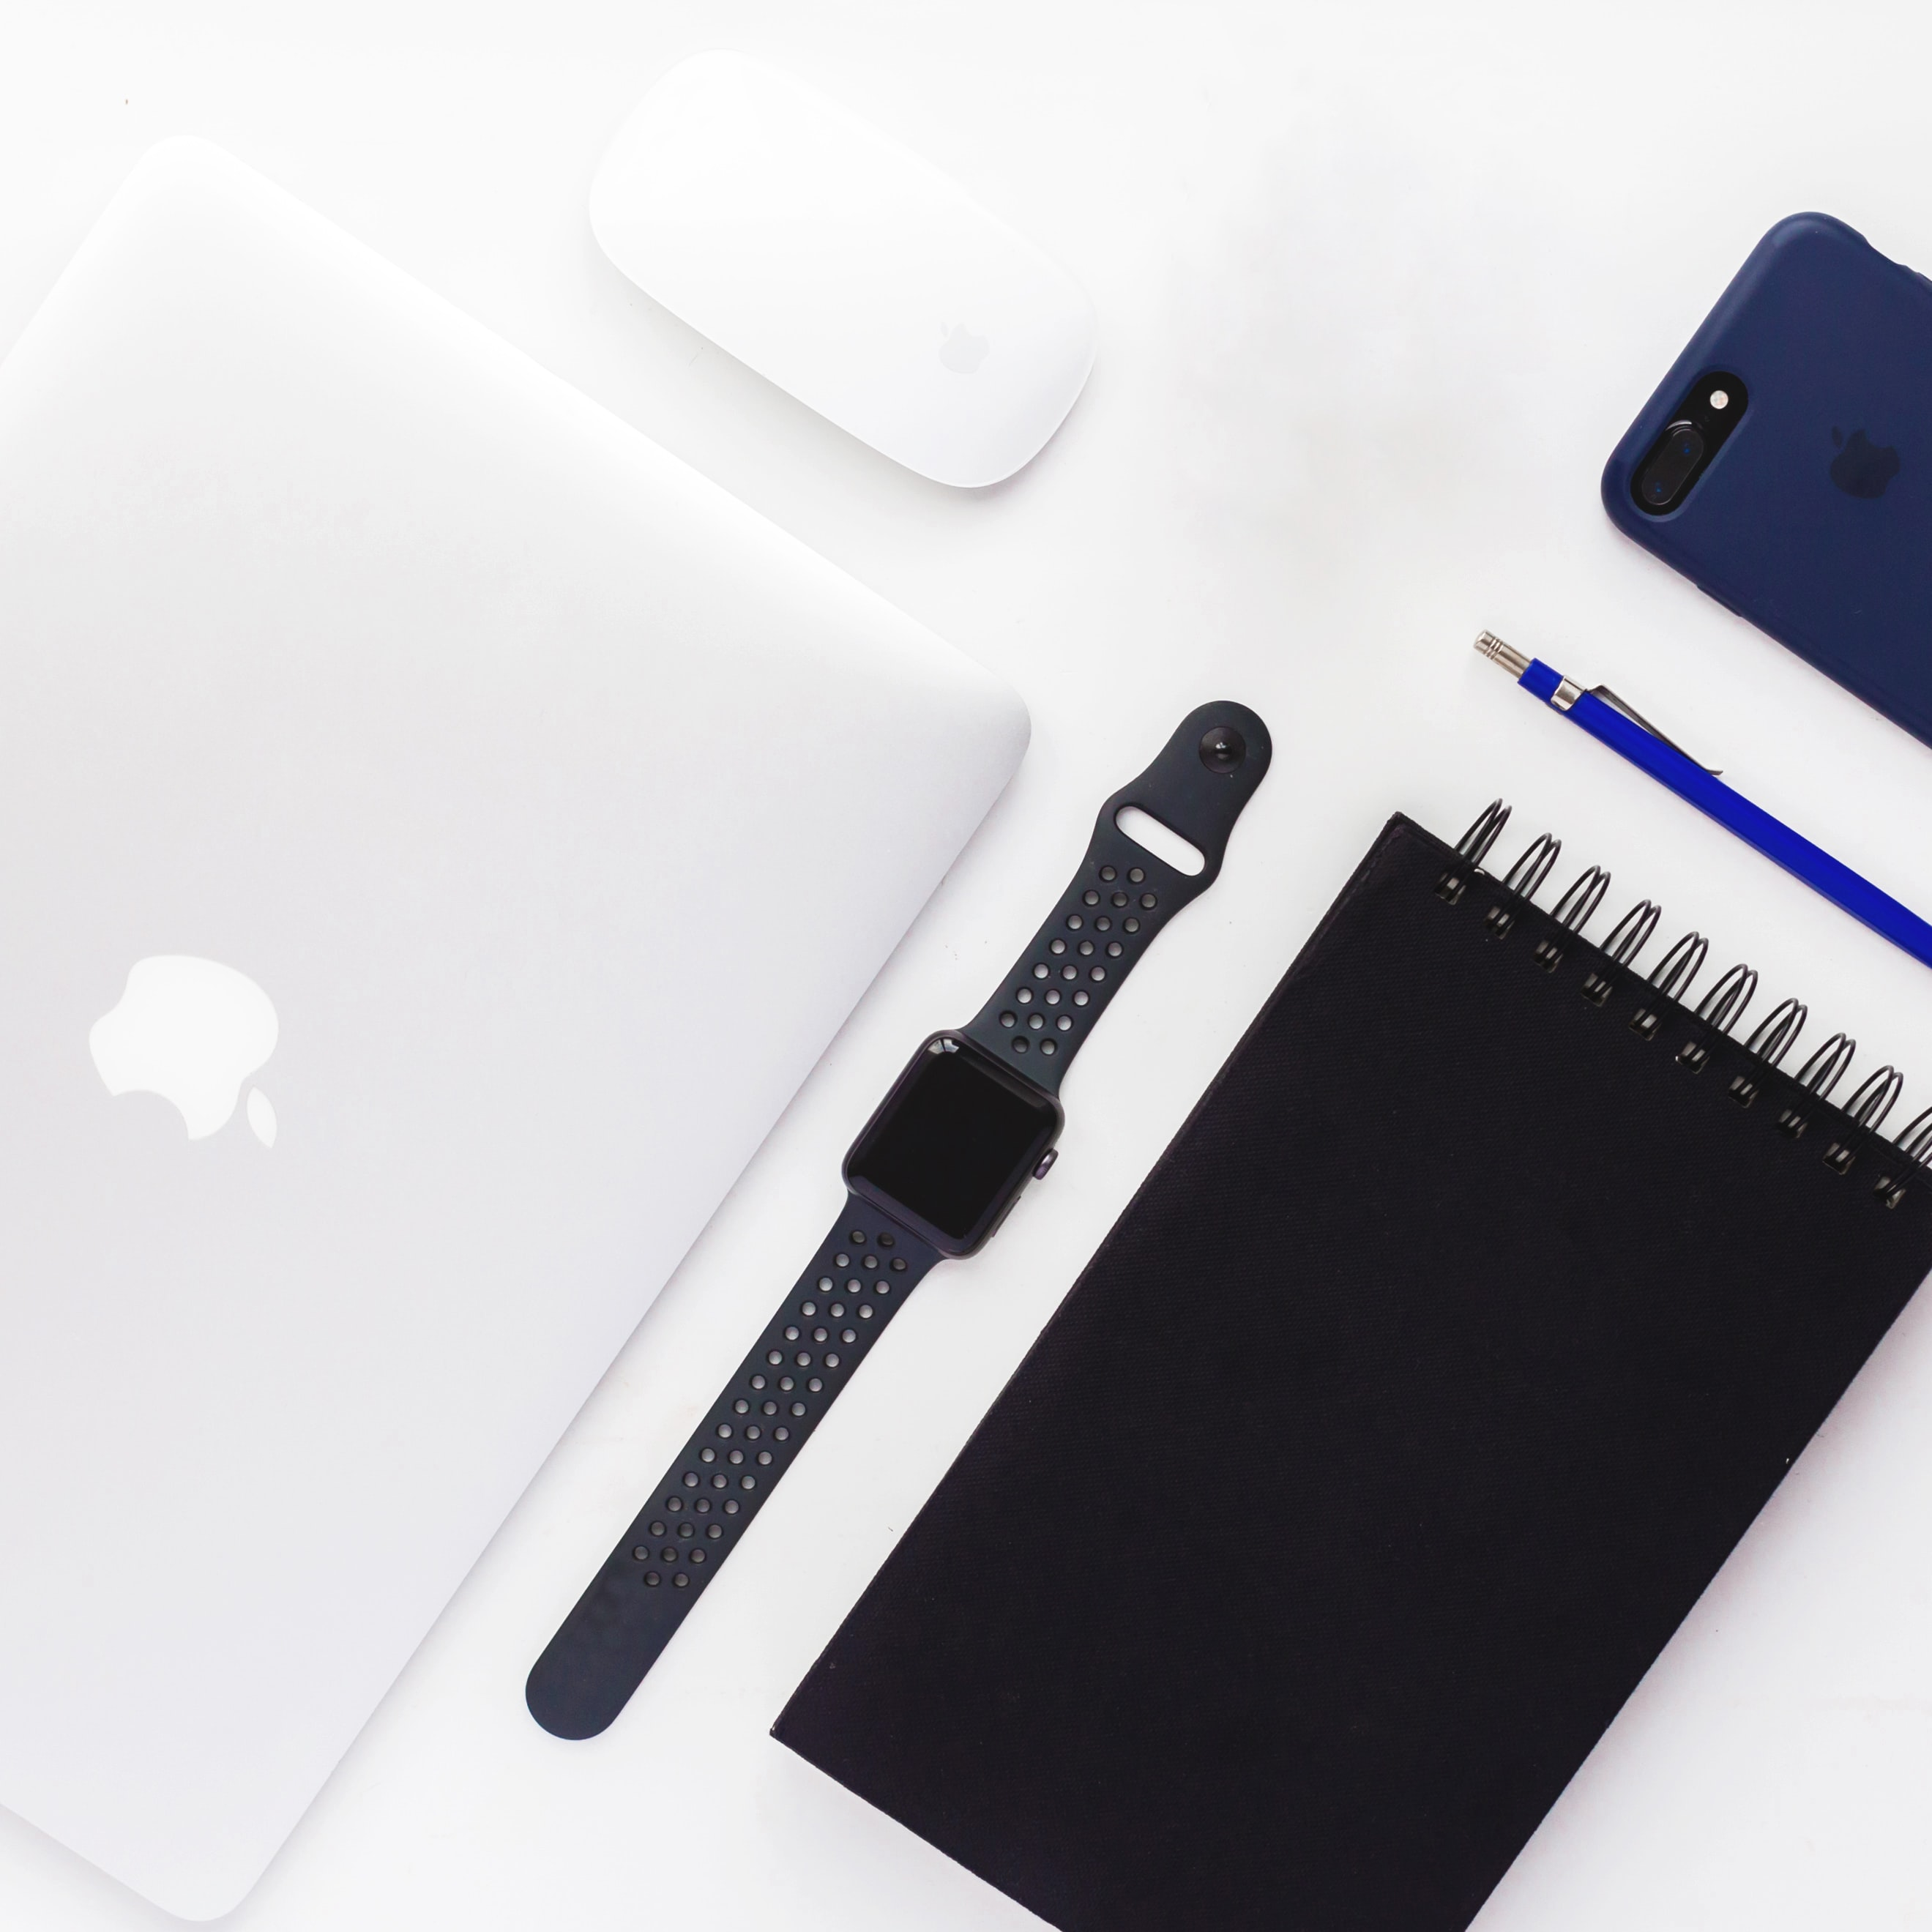 flat lay photography of space gray aluminum case Apple Watch with Nike Sport Band, spiral book, MacBook White, Apple Magic Mouse, and black iPhone 7 Plus with blue case